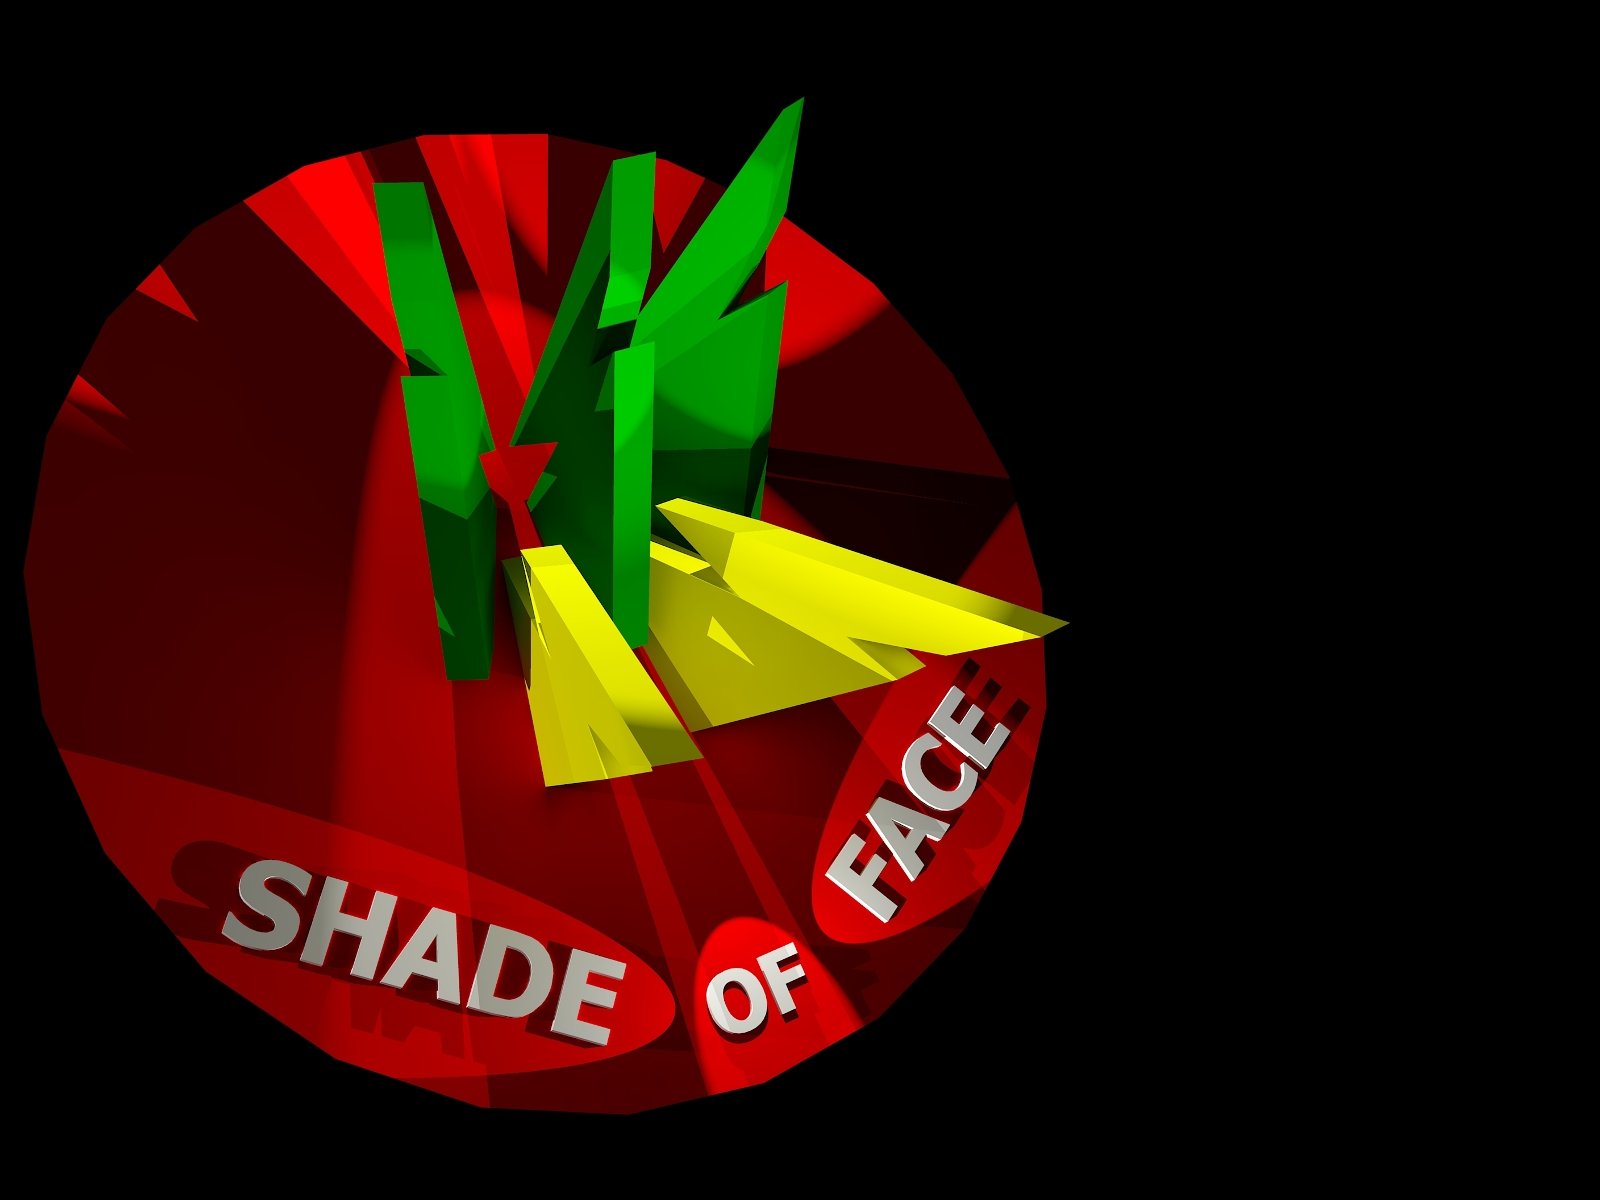 Shade of face disc